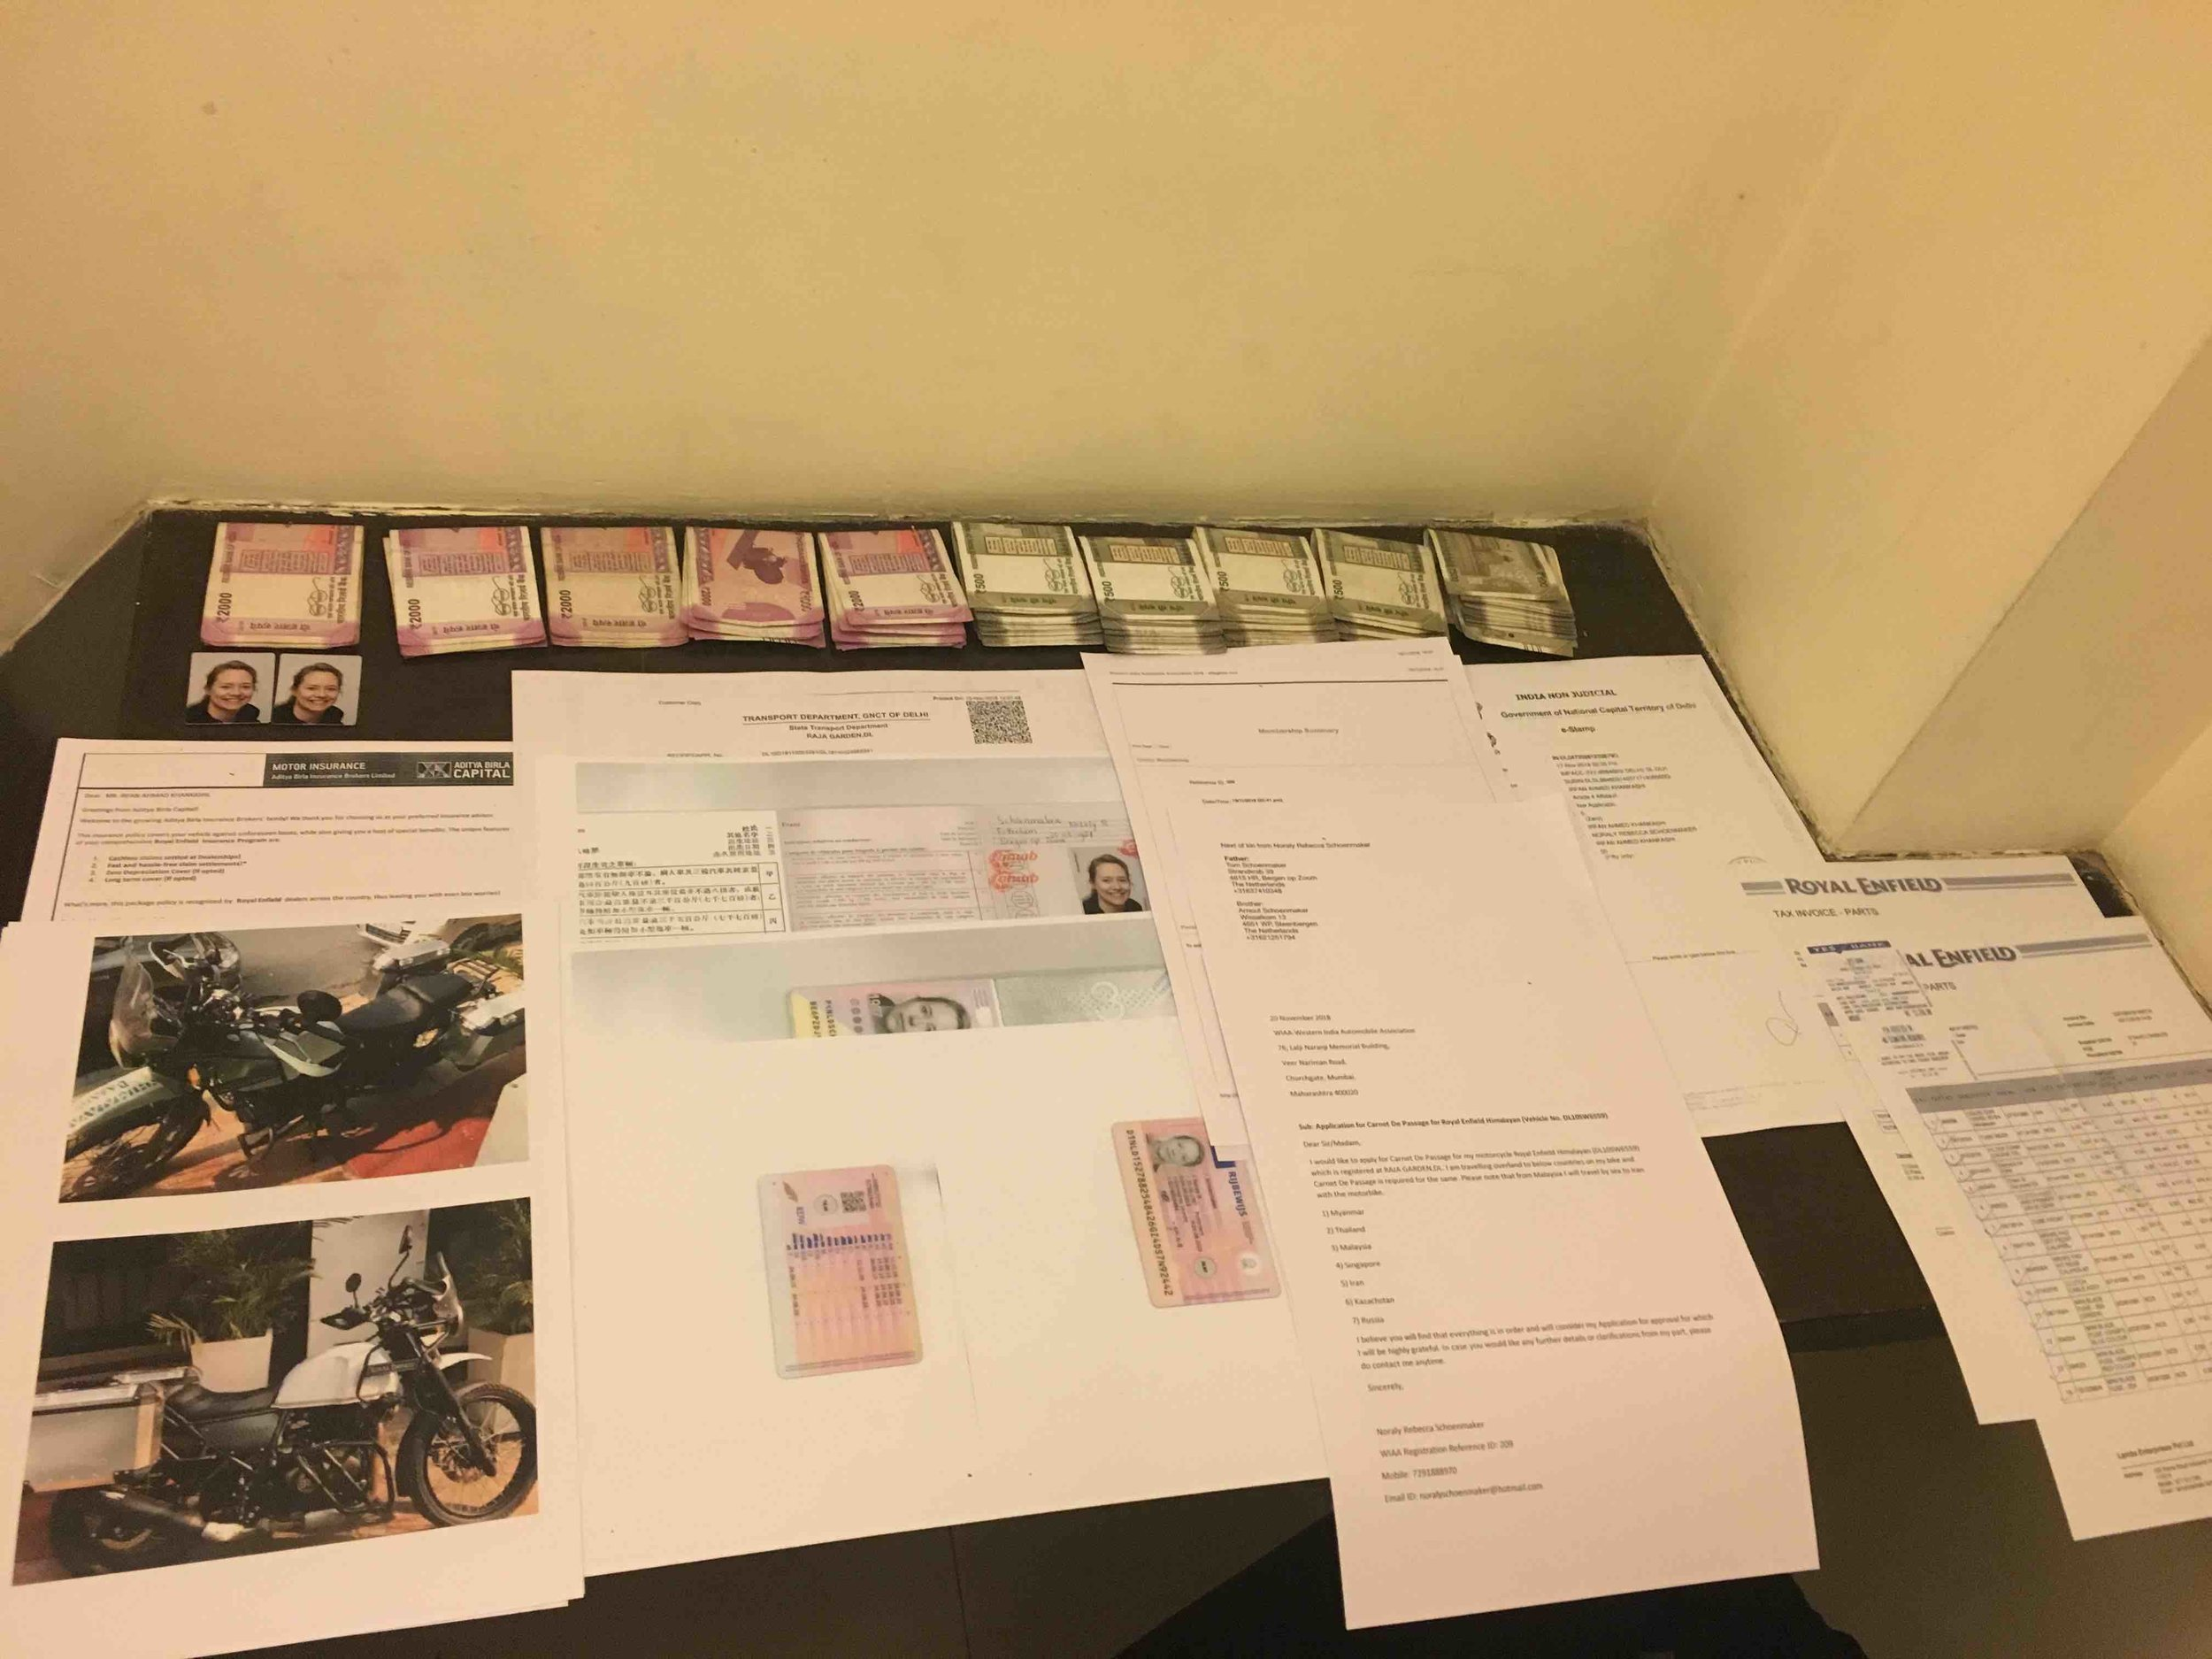 Paperworks and cash necessary to get a Carnet-de-Passage in India